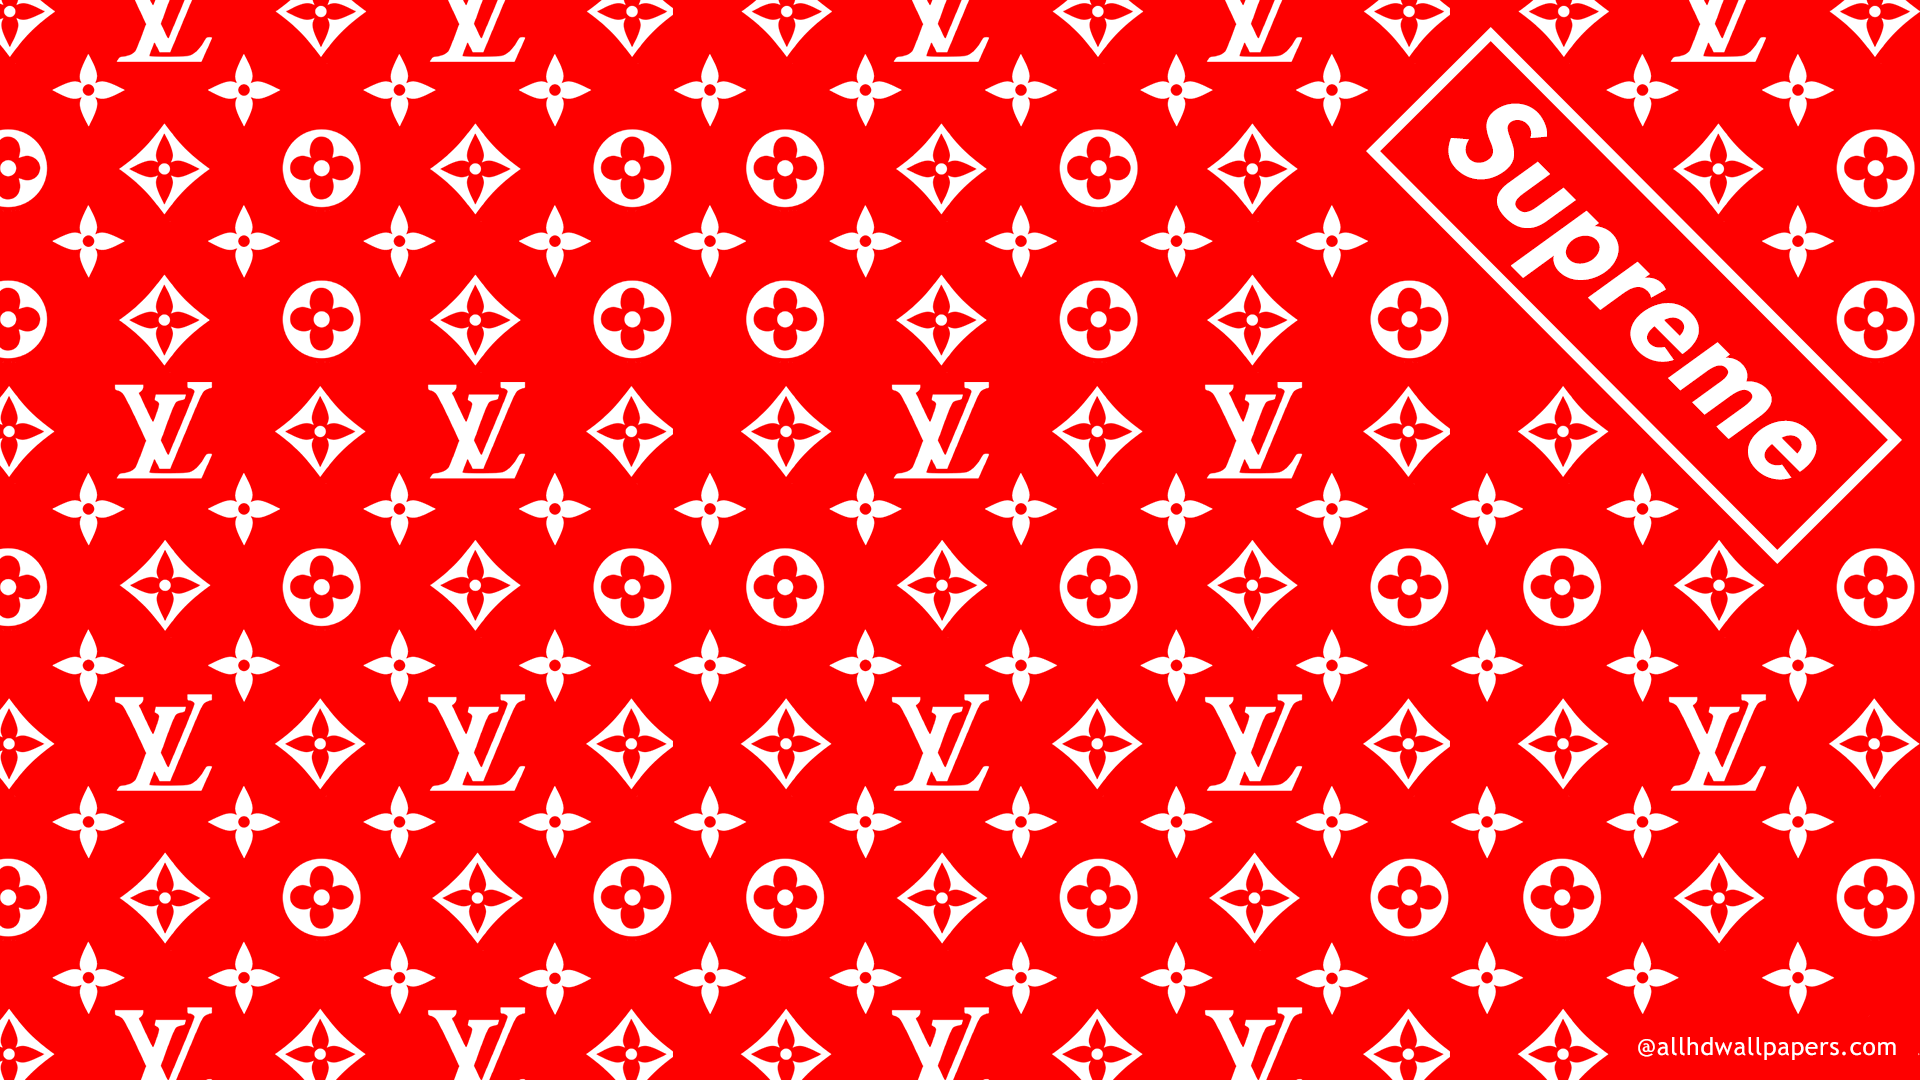 70 Supreme Wallpapers in 4K   AllHDWallpapers 1920x1080